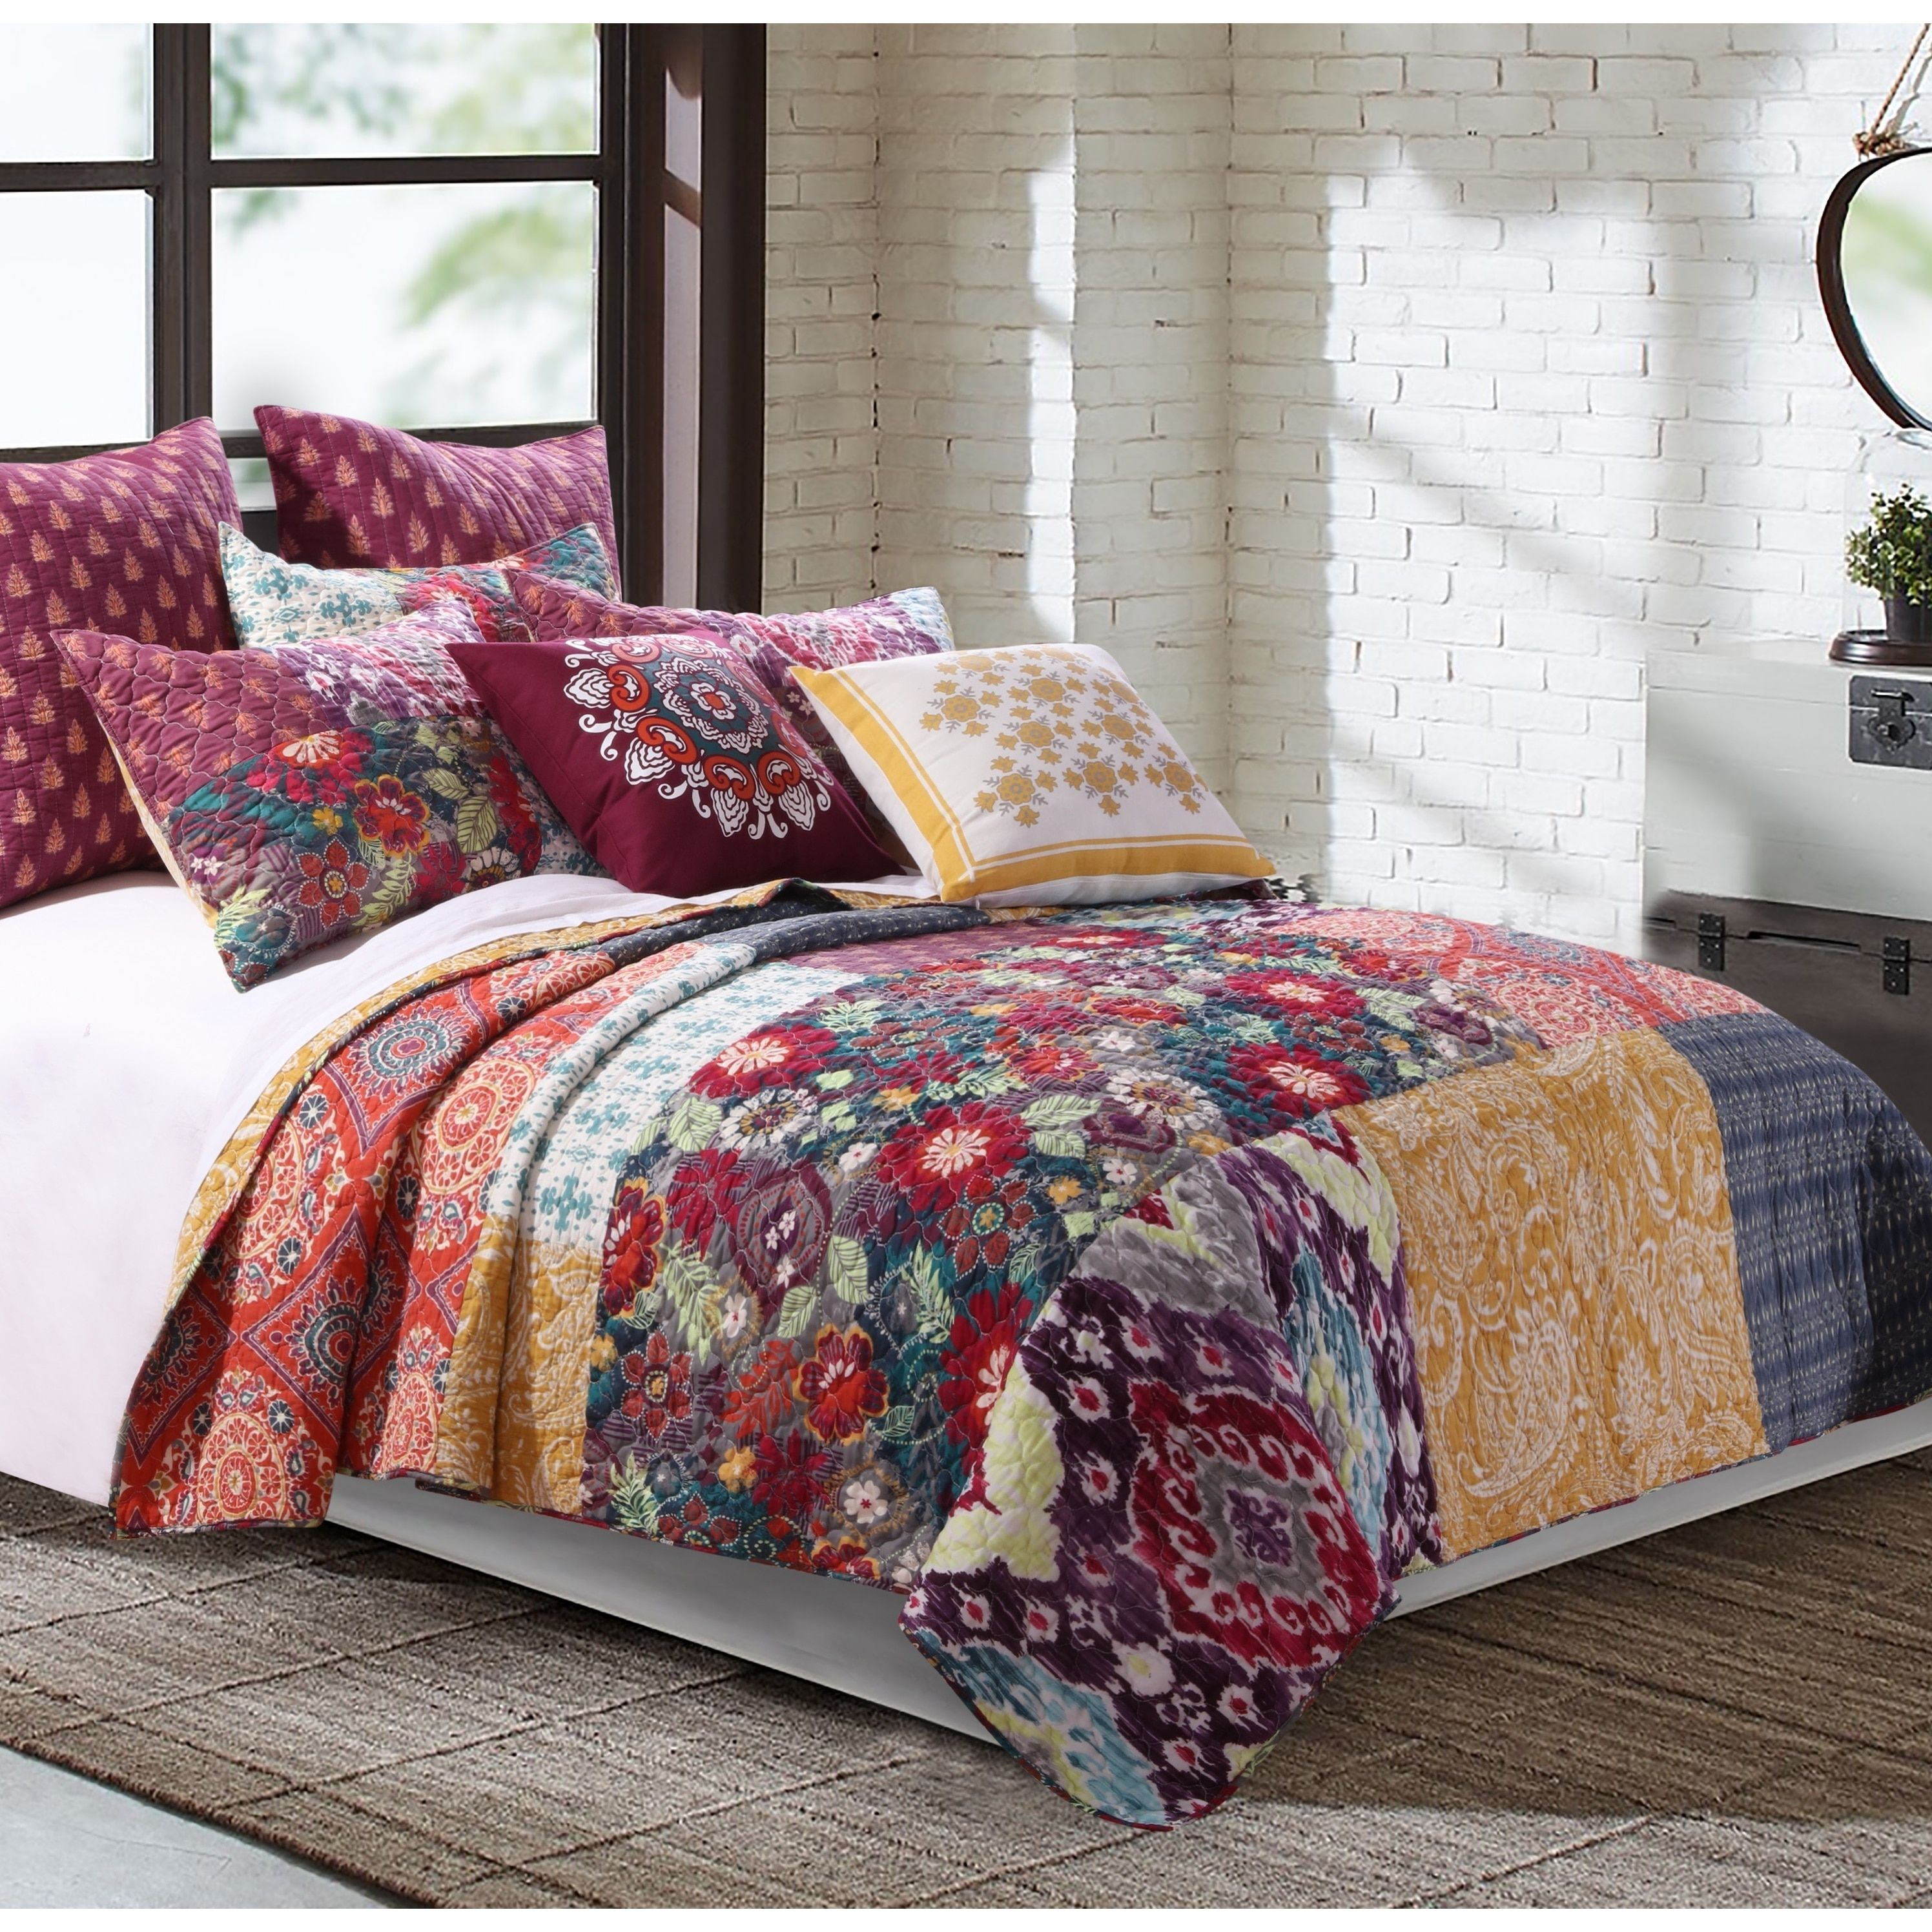 cheap junk bedroom bedding duvet ebay size chic of discontinued amazon and bohemian mandala for anthropologie quilts covers beach decor ideas queen gypsy wrought cottage quilt boho king comforter spoonful hippie iron in style contemporary type hipster bag